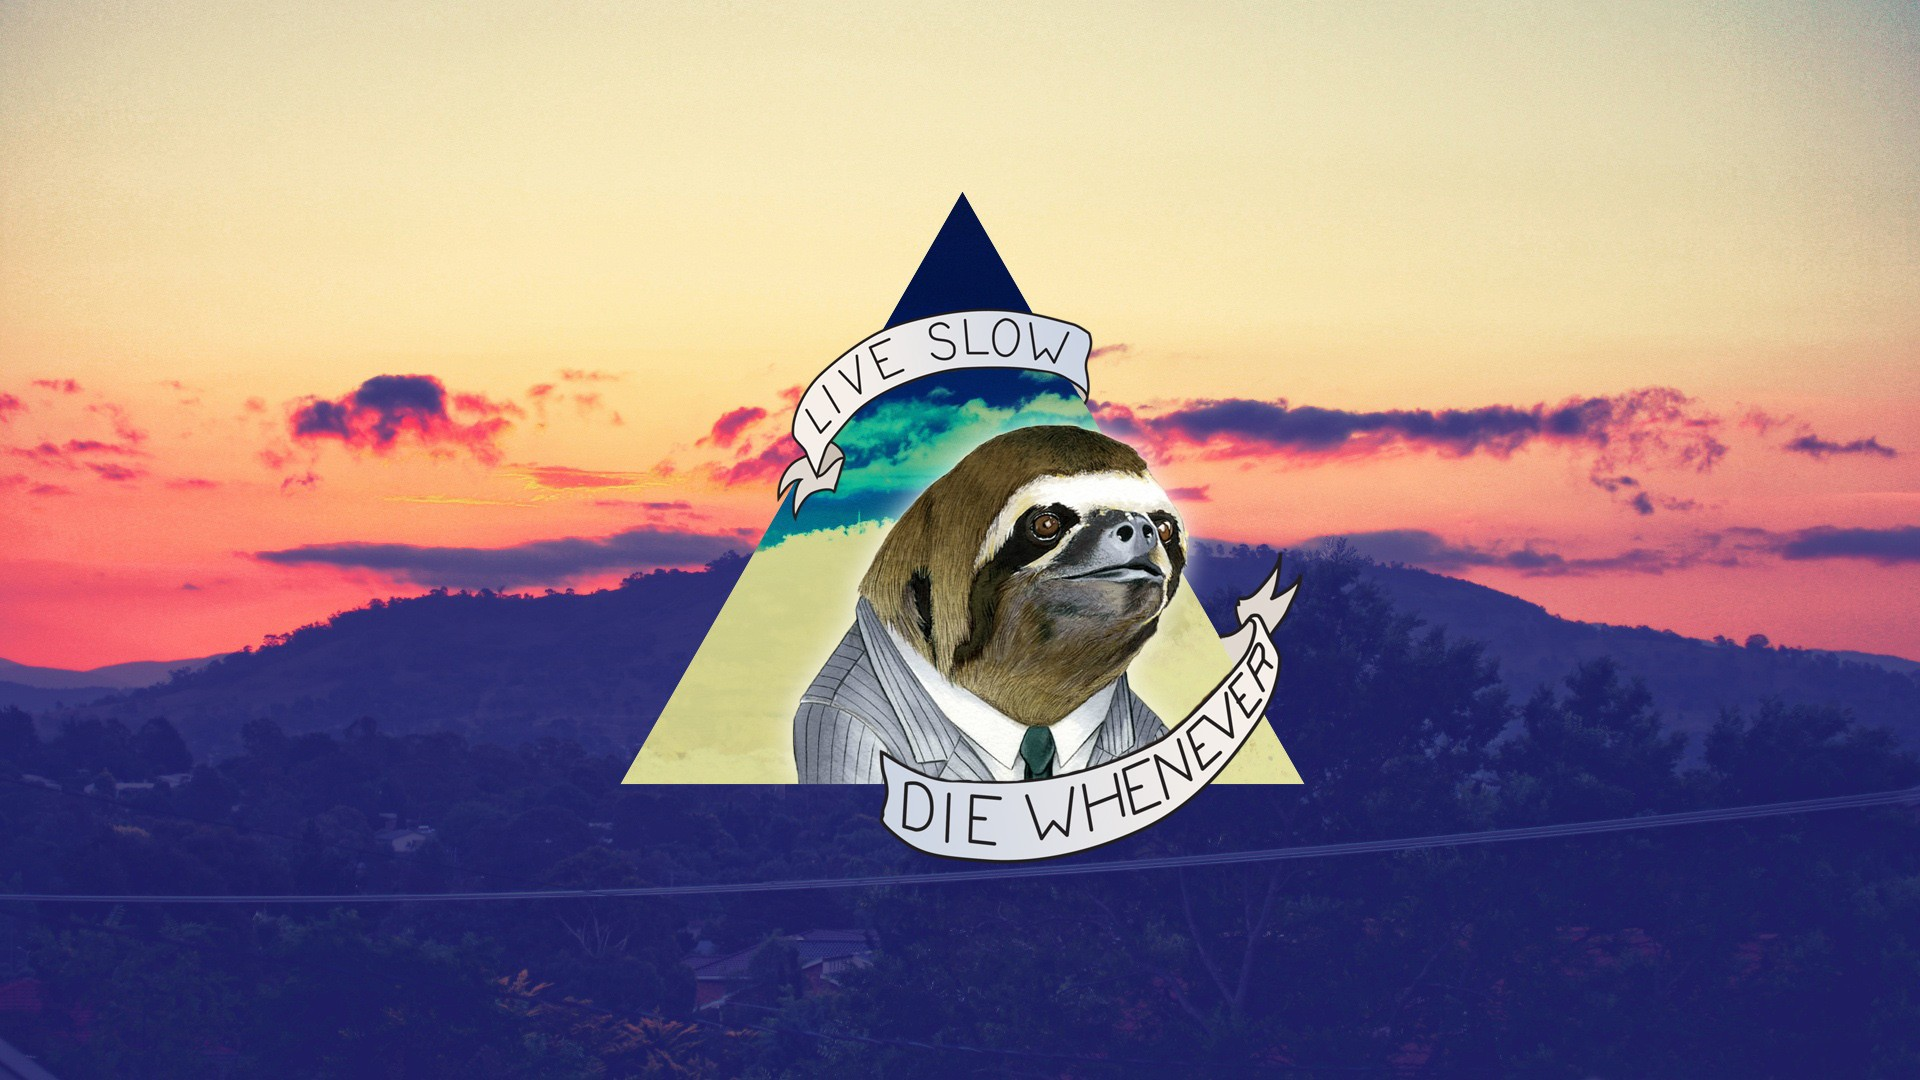 Sloth - Live Slow, Die Whenever Full HD Wallpaper and ...